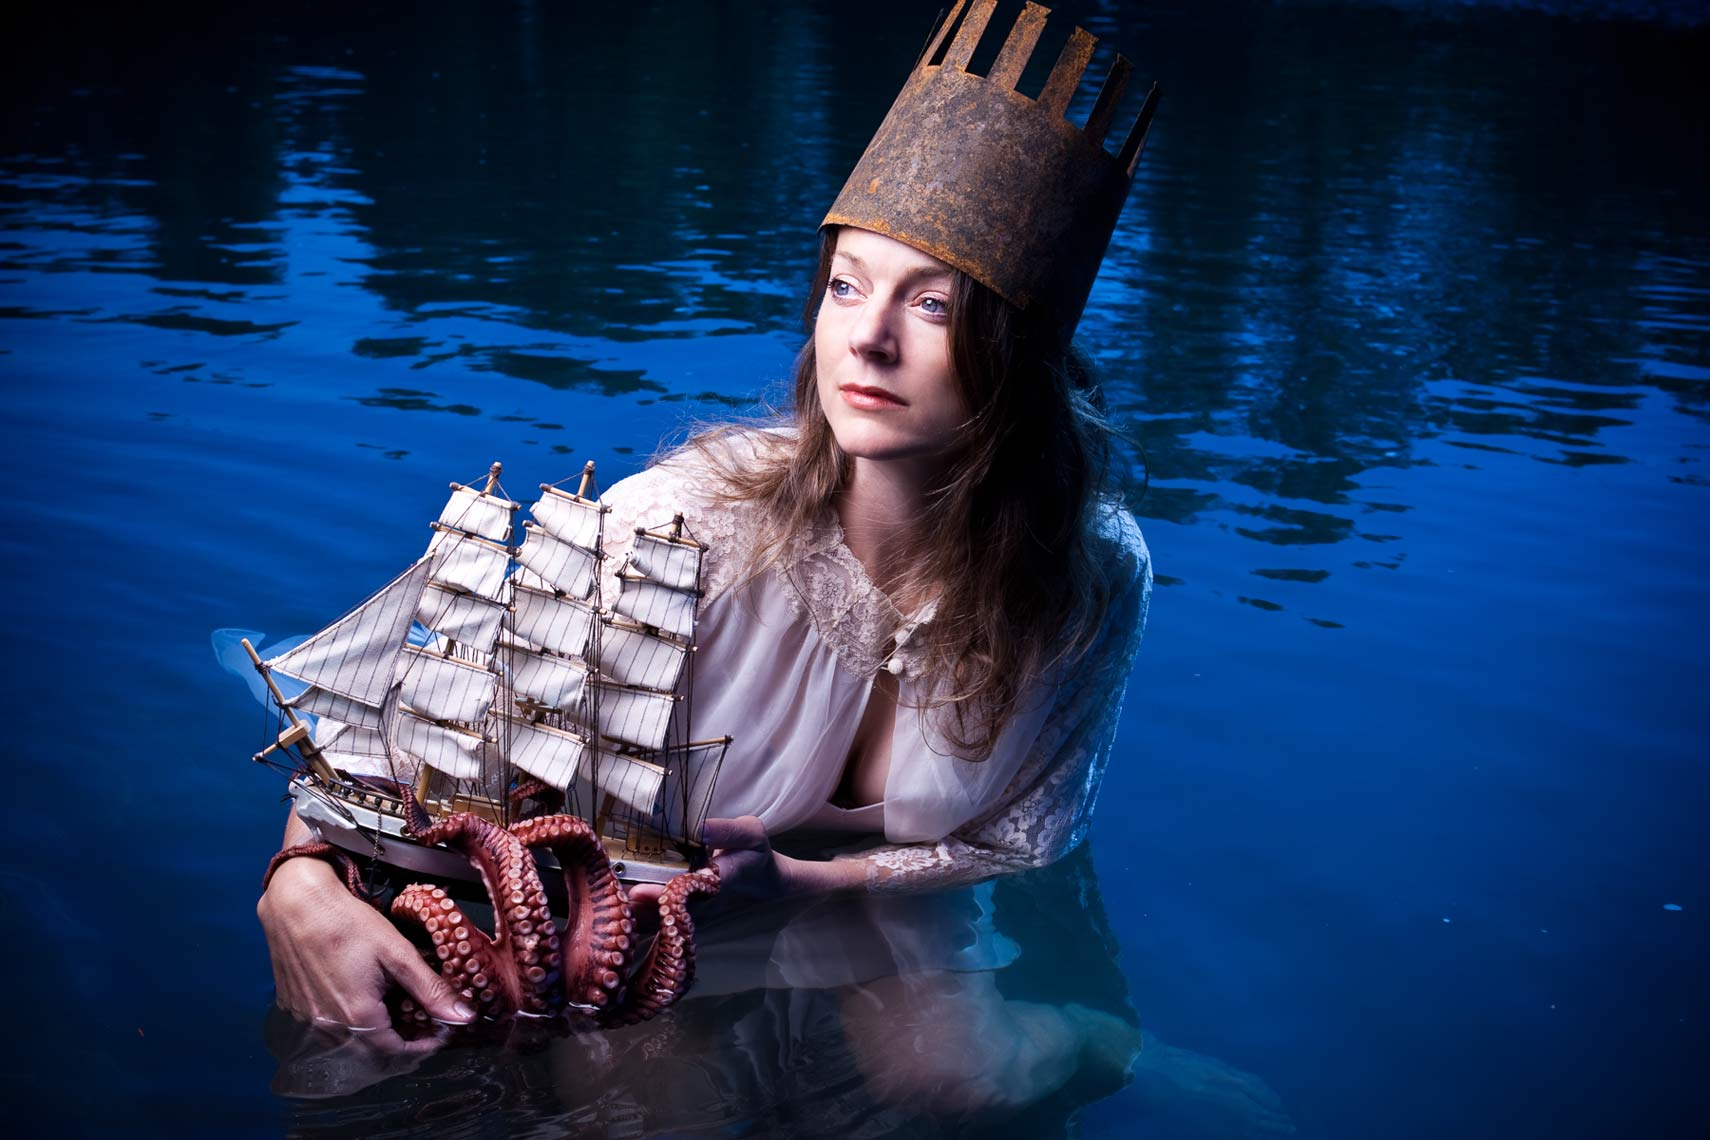 Portrait of a woman with a crown, her boat, and an octopus in water.